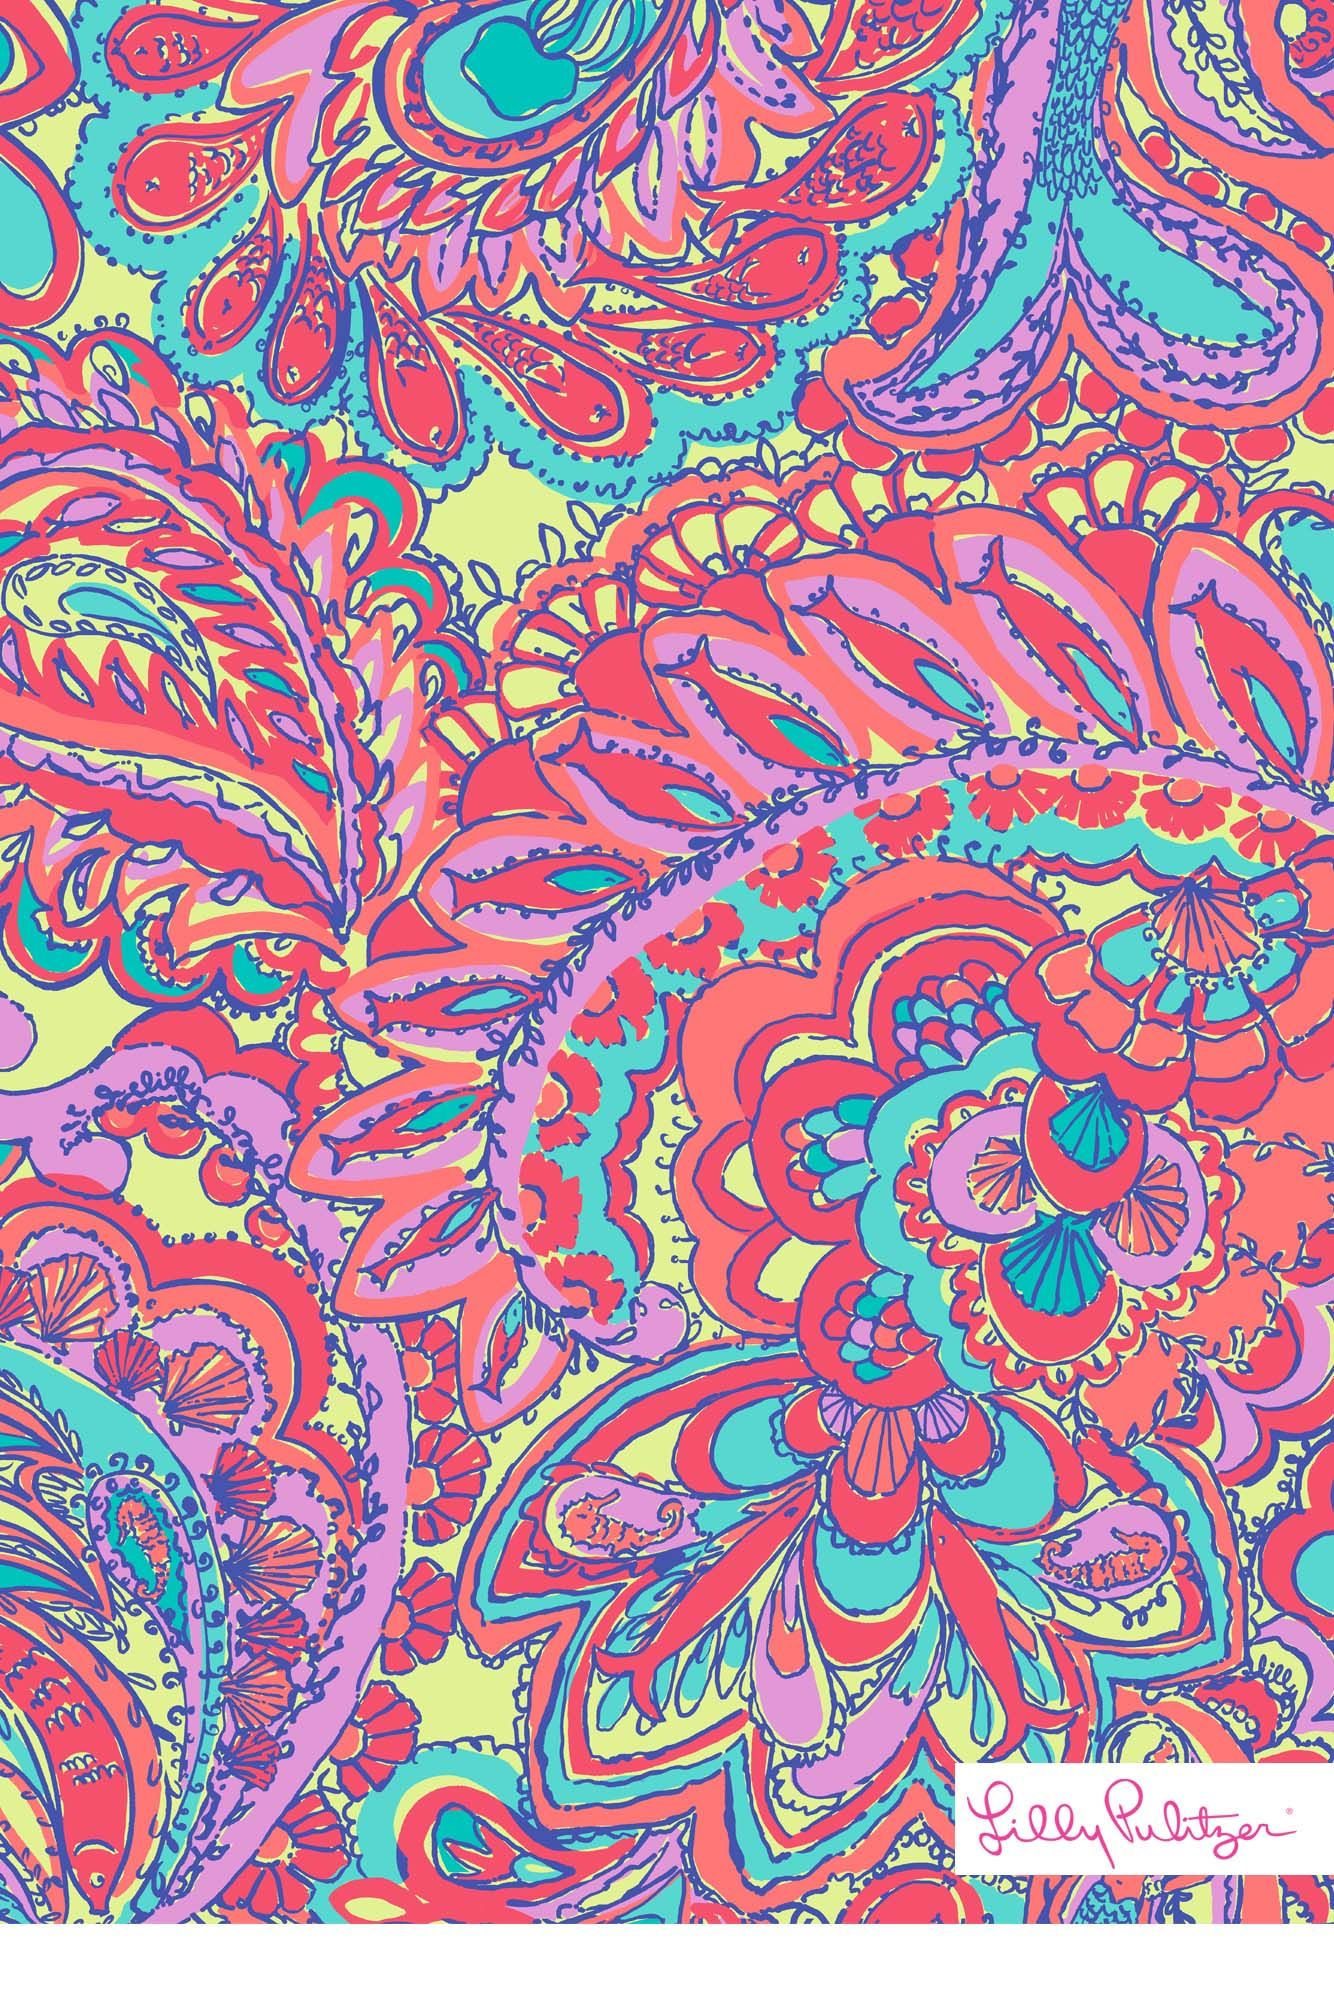 Lilly Pulitzer Patterns Lilly Pulitzer Feelin Groovy Mobile Wallpaper Patterns We Love